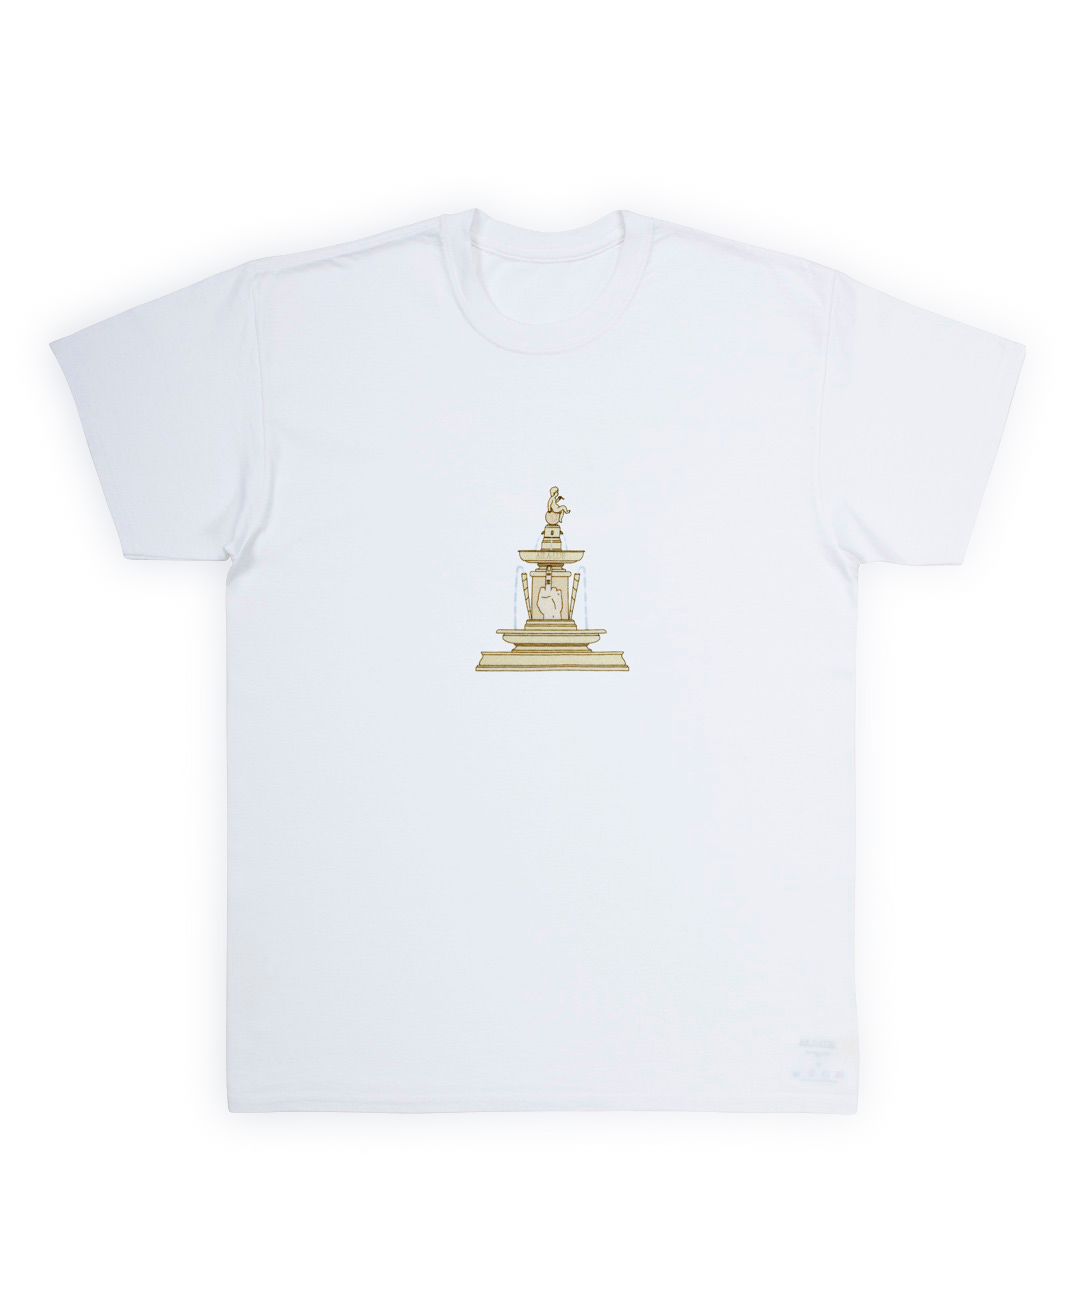 Image of STATUE T-SHIRT